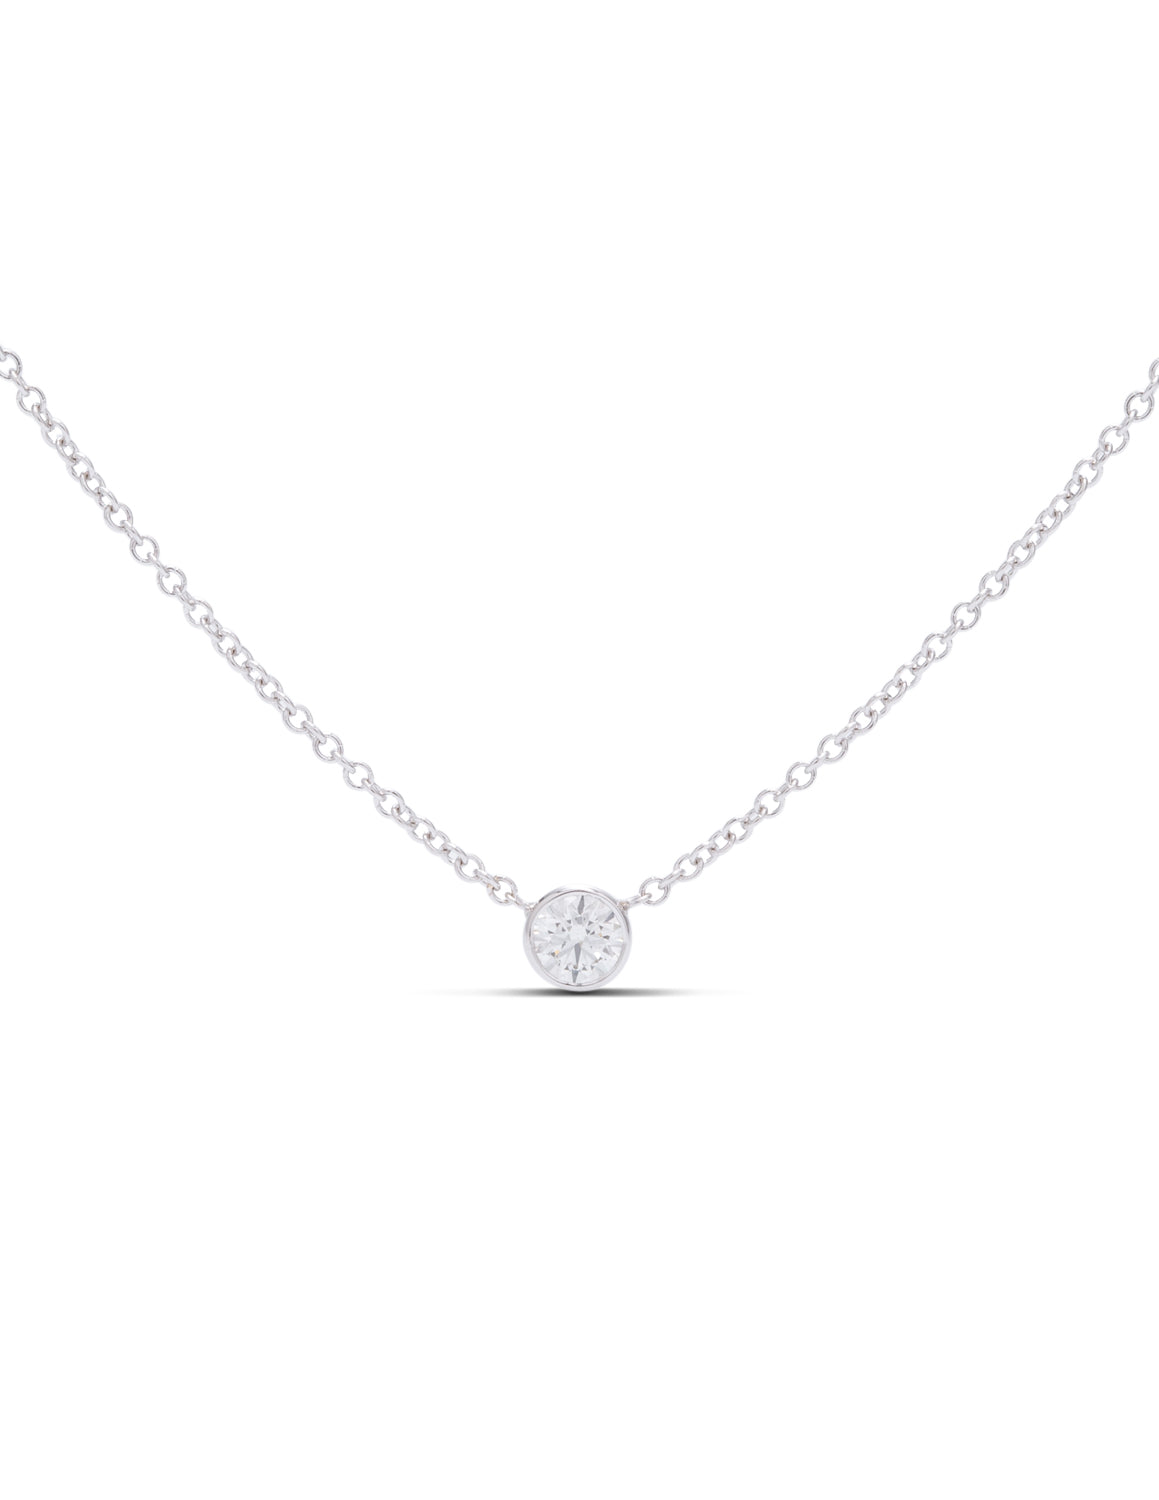 Delicate Bezel Set Diamond Solitaire Pendant - Charles Koll Jewellers